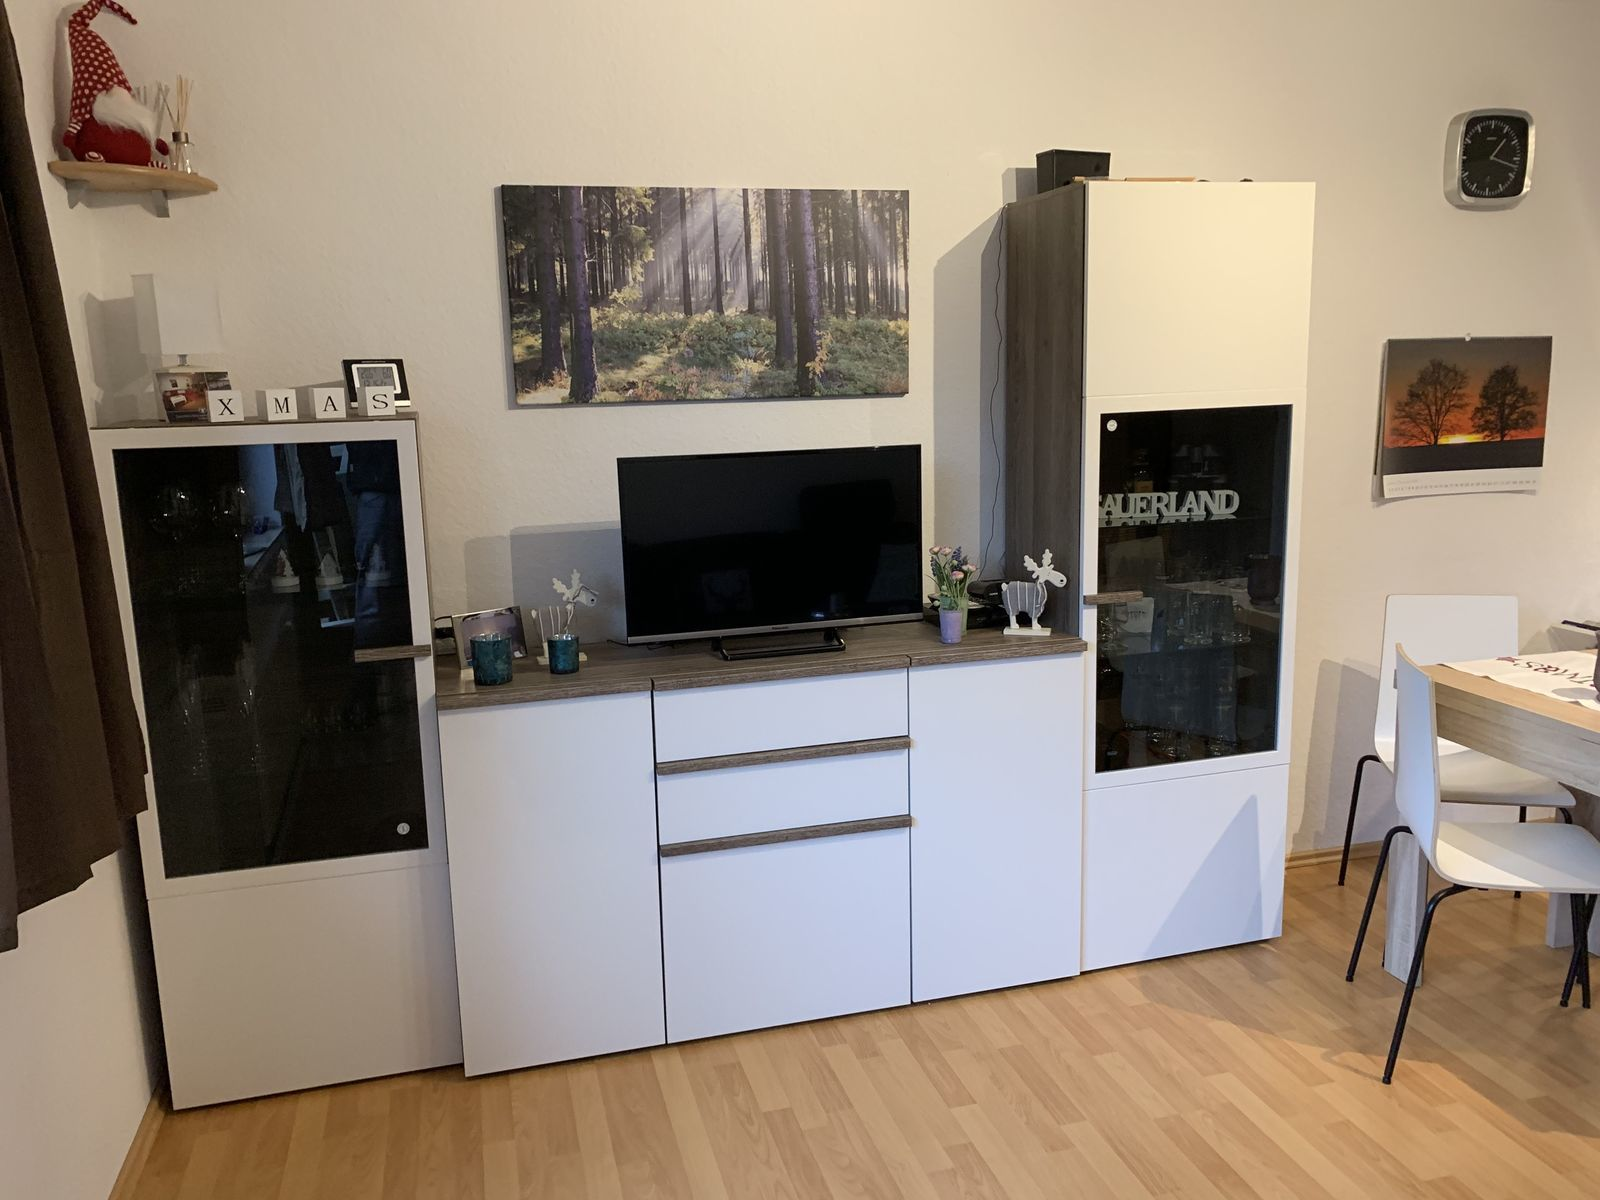 Appartement - Am Kleehagen 5-F